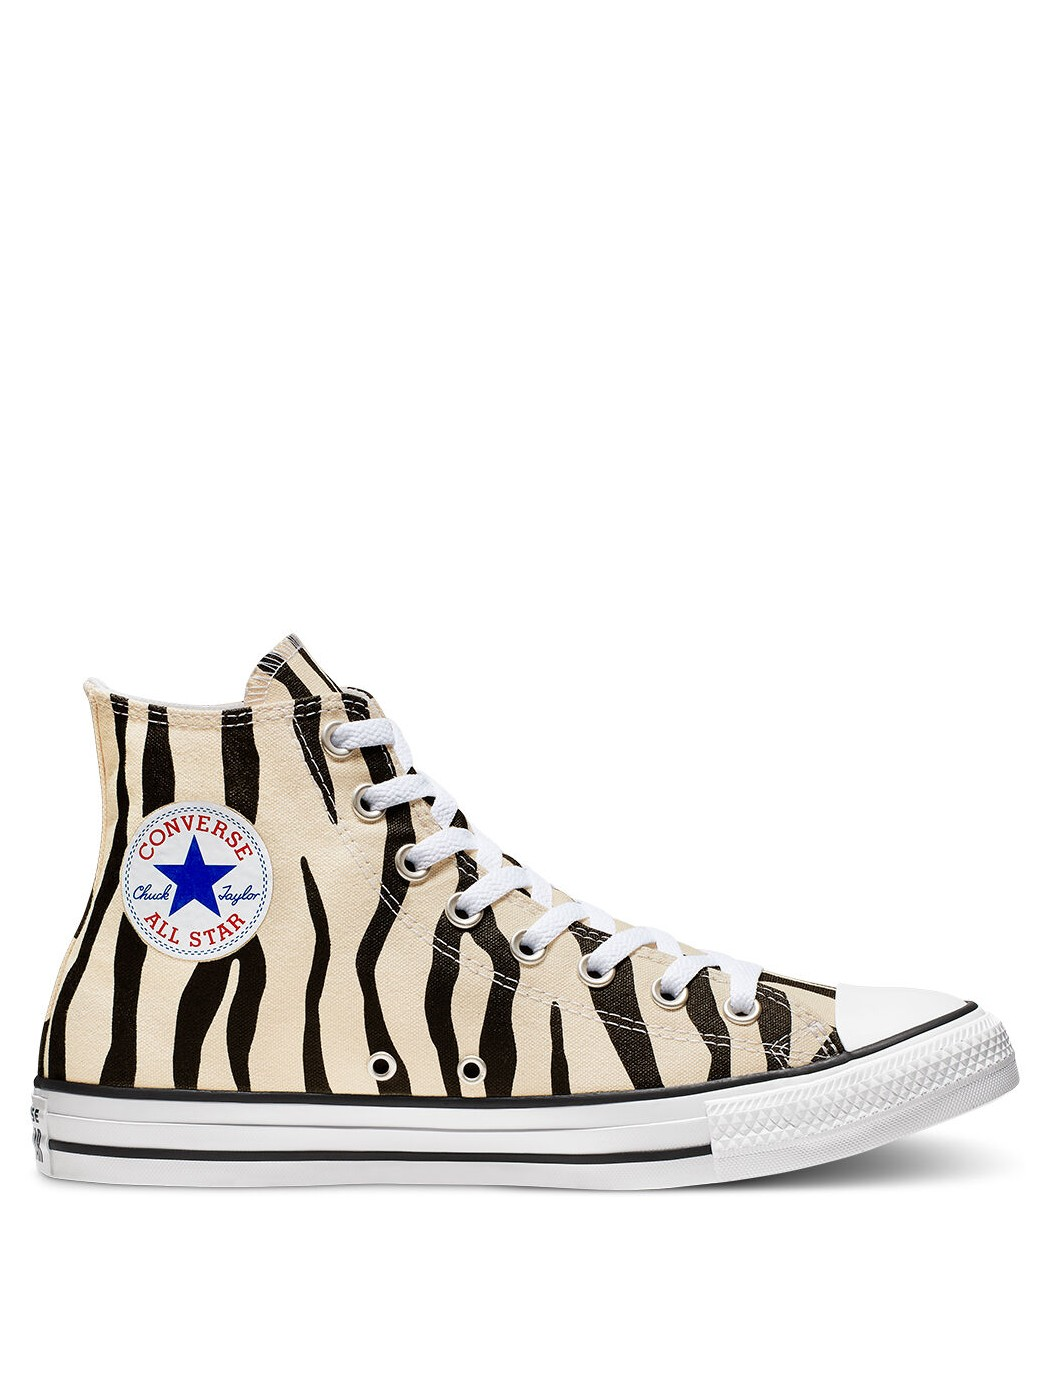 CHUCK TAYLOR ALL STAR ANIMALIER CONVERSE 166258C